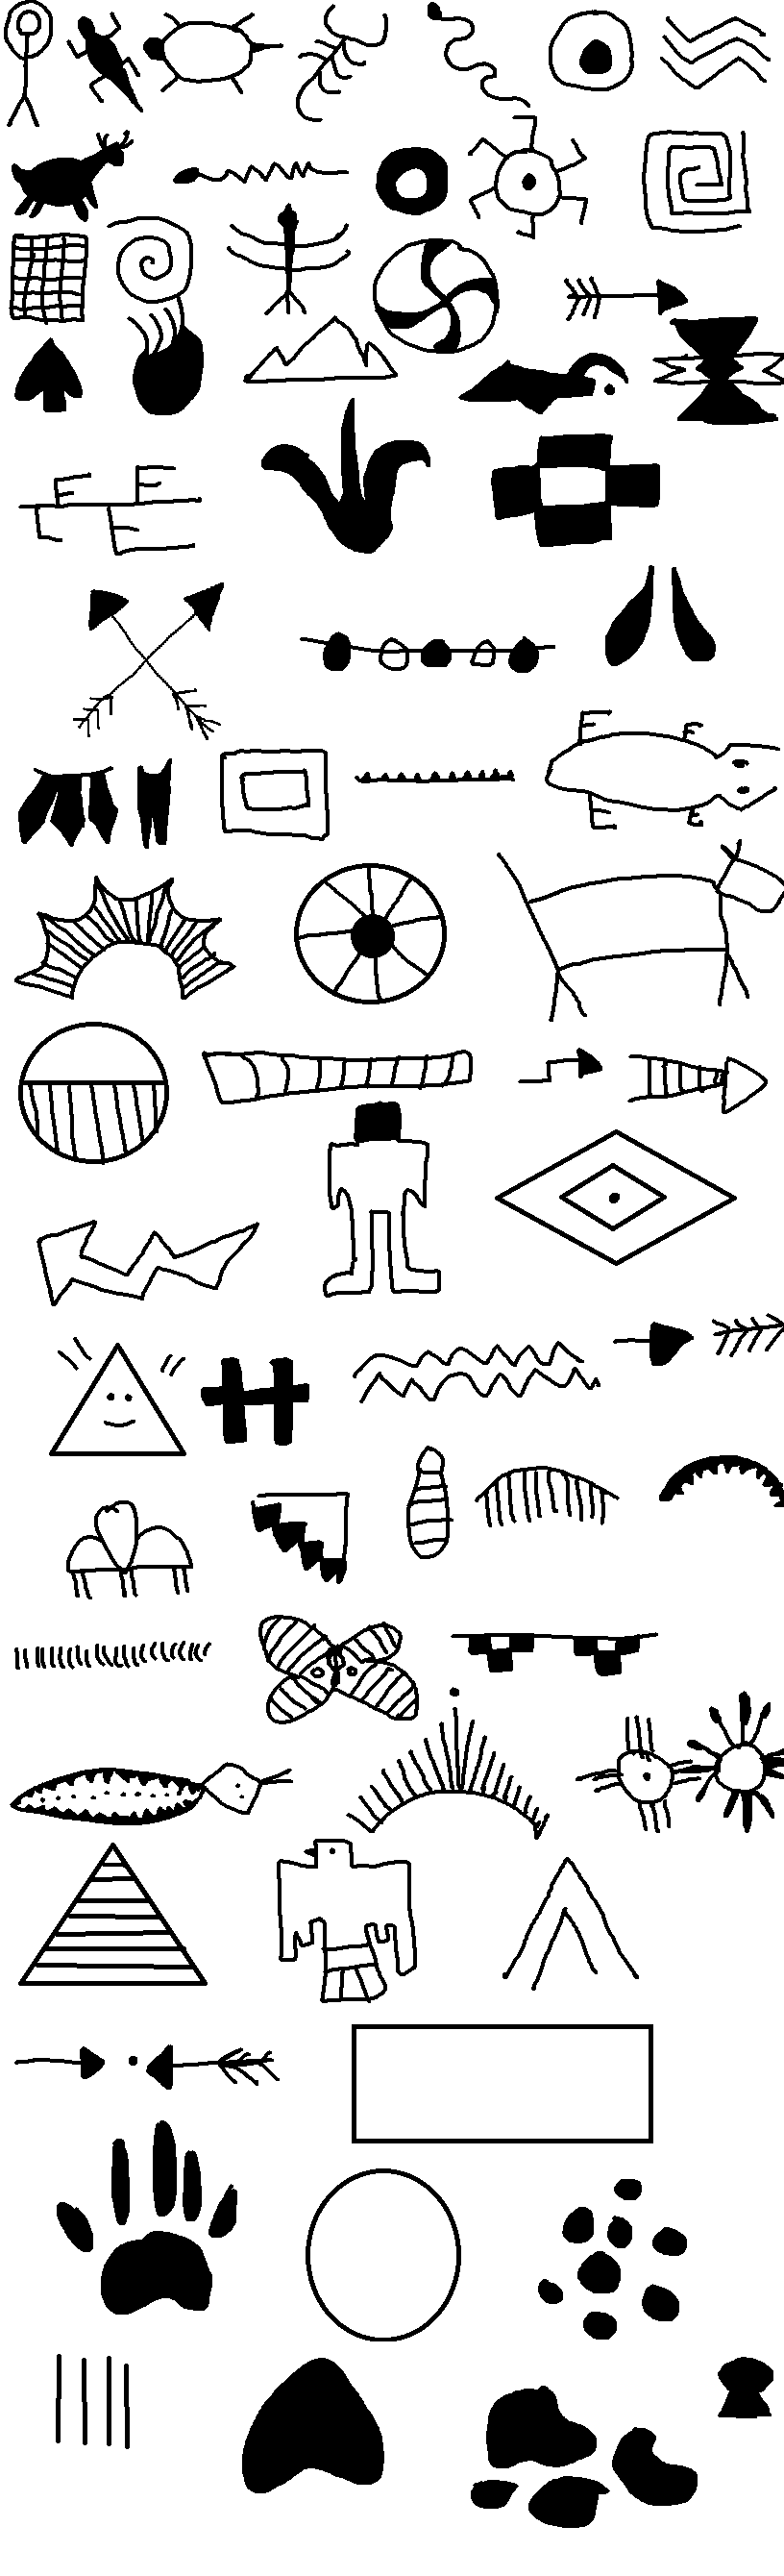 Native American Symbols By Narutard277 On Deviantart